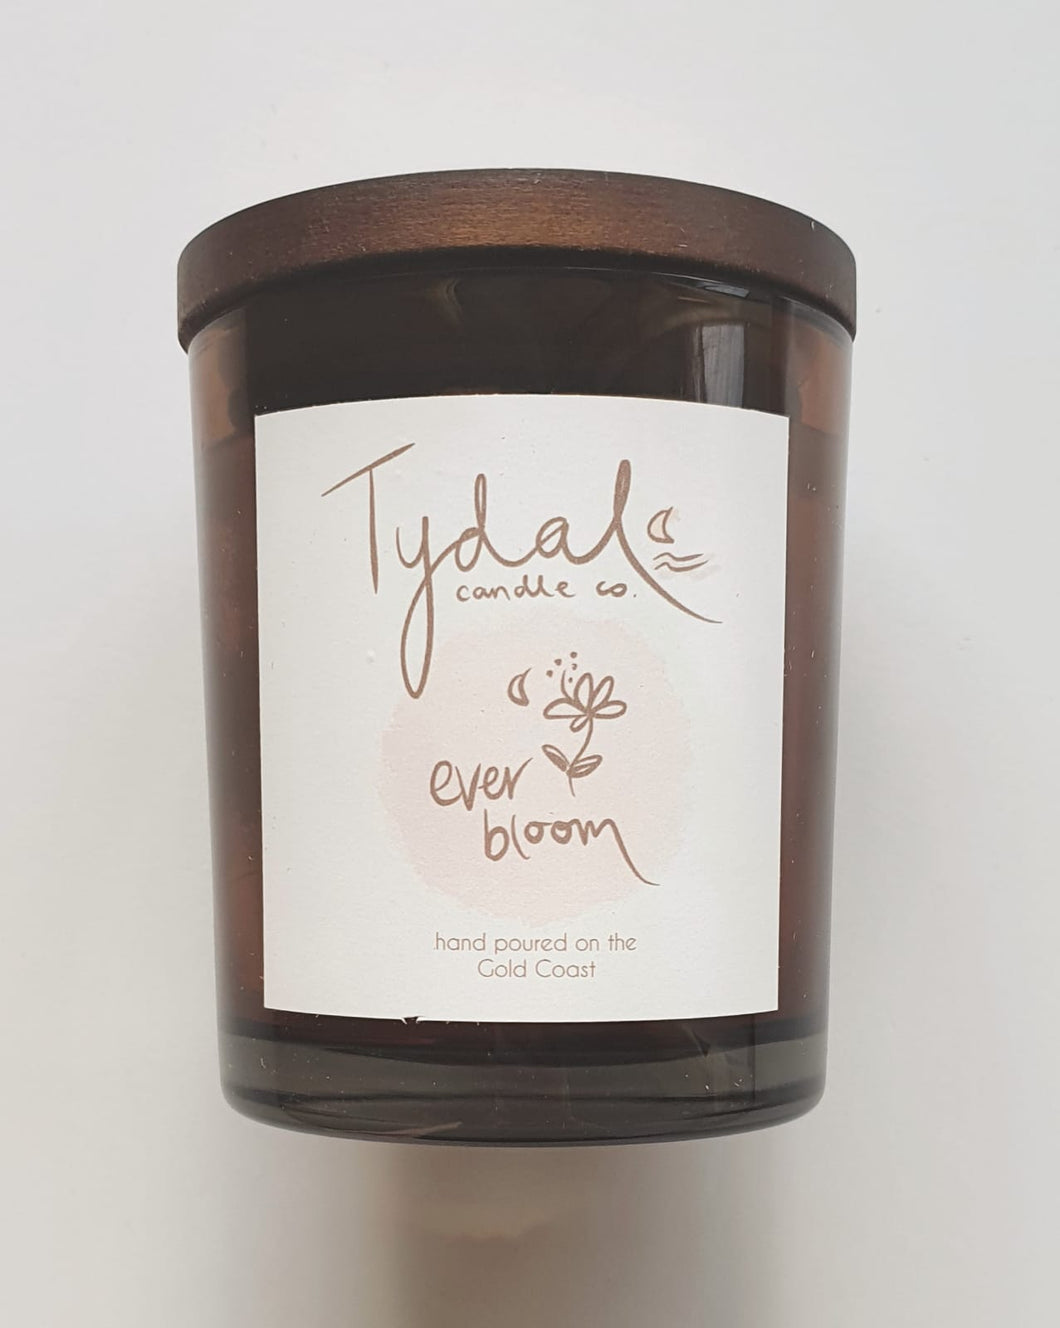 A sweet & fruity floral aroma. Wild jasmine, peony, pink apple and pomegranate with hints of vanilla bean and honeydew. A Tydal candle co. blend that was inspired by rolling fields of wildflowers. A beautiful blend that smells like a fresh bunch of flowers. Burning time approx 48 hrs